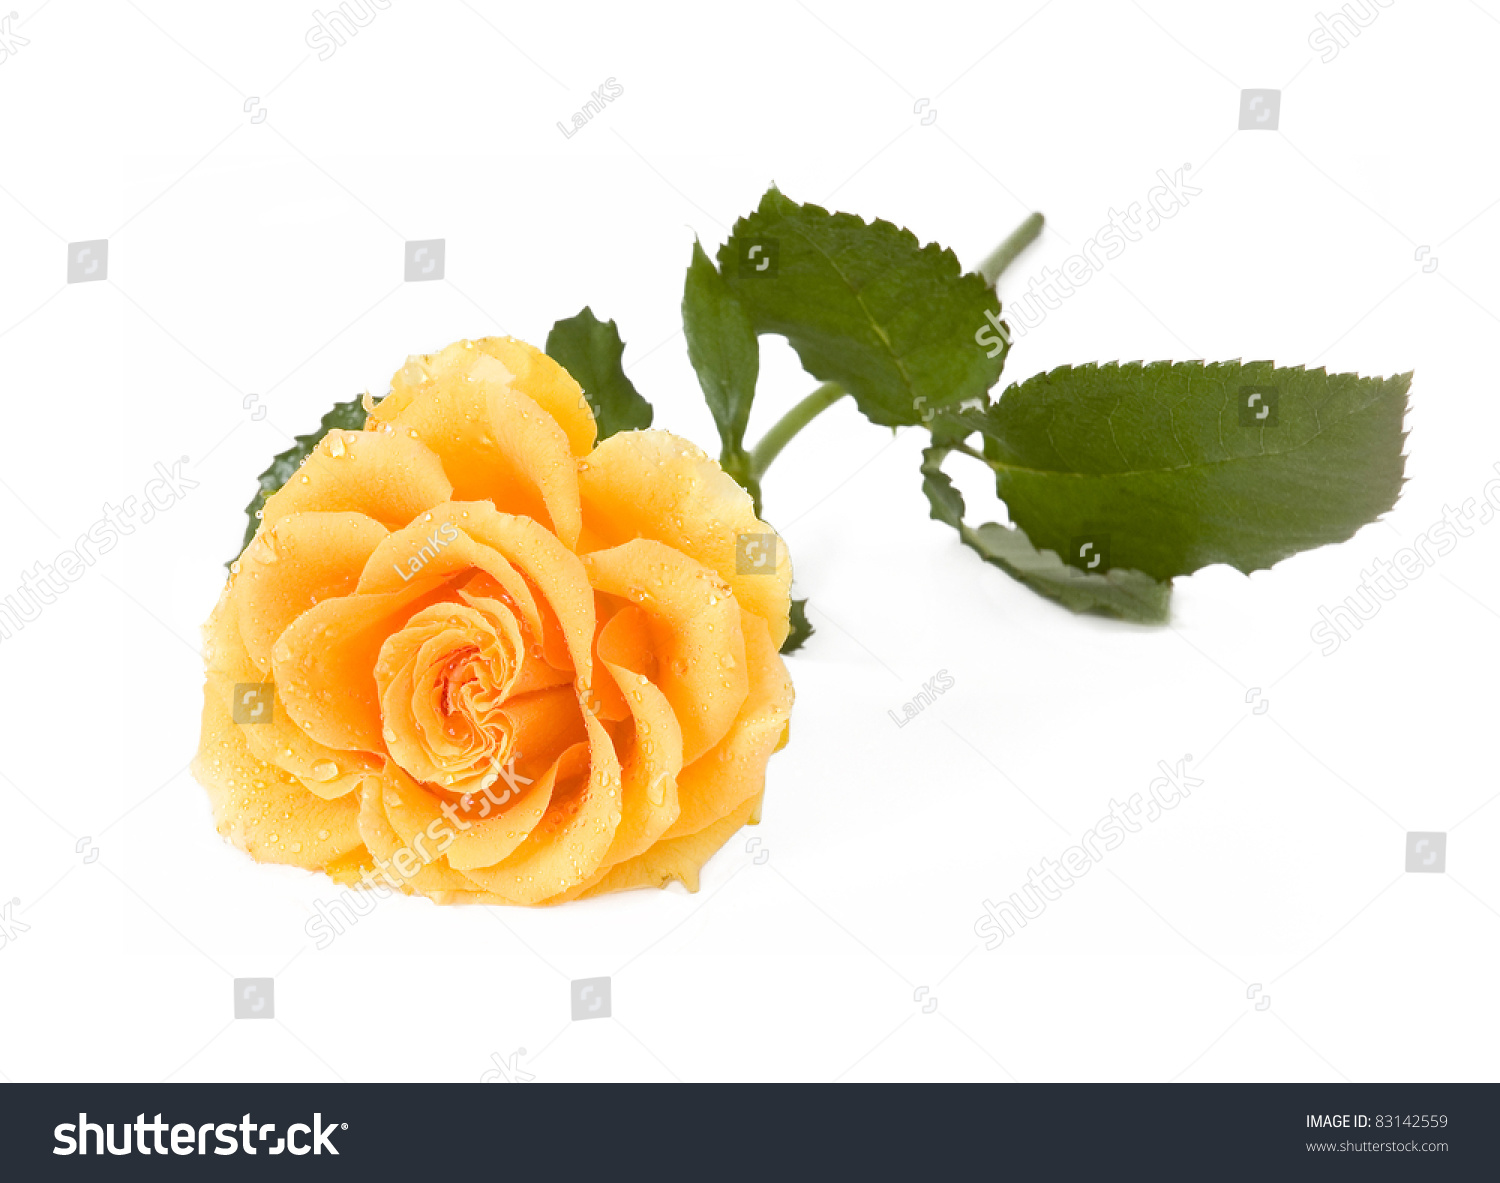 Yellow Rose With Water Drops: Beautiful Yellow Rose With Leaves And Water Drops Isolated